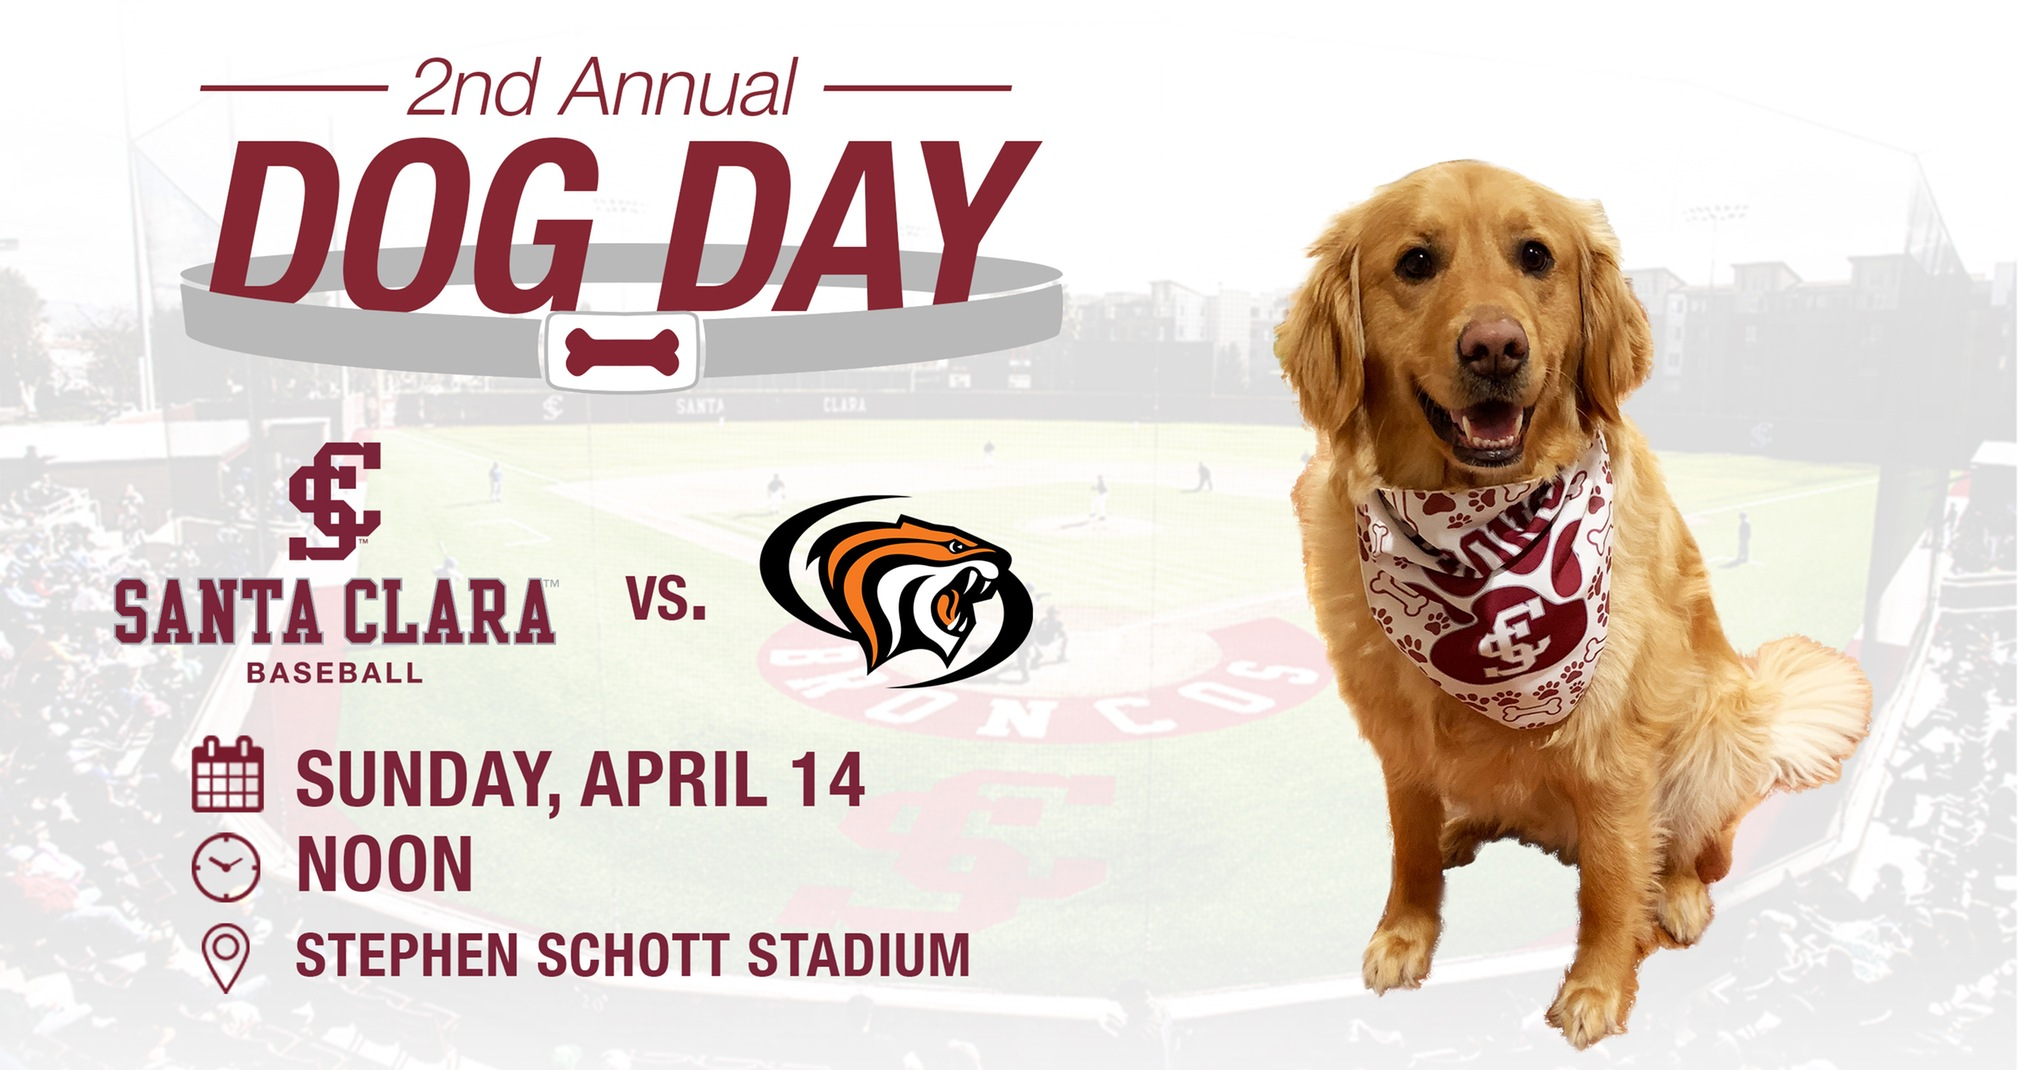 Second Annual Dog Day At Stephen Schott Stadium On Sunday, April 14